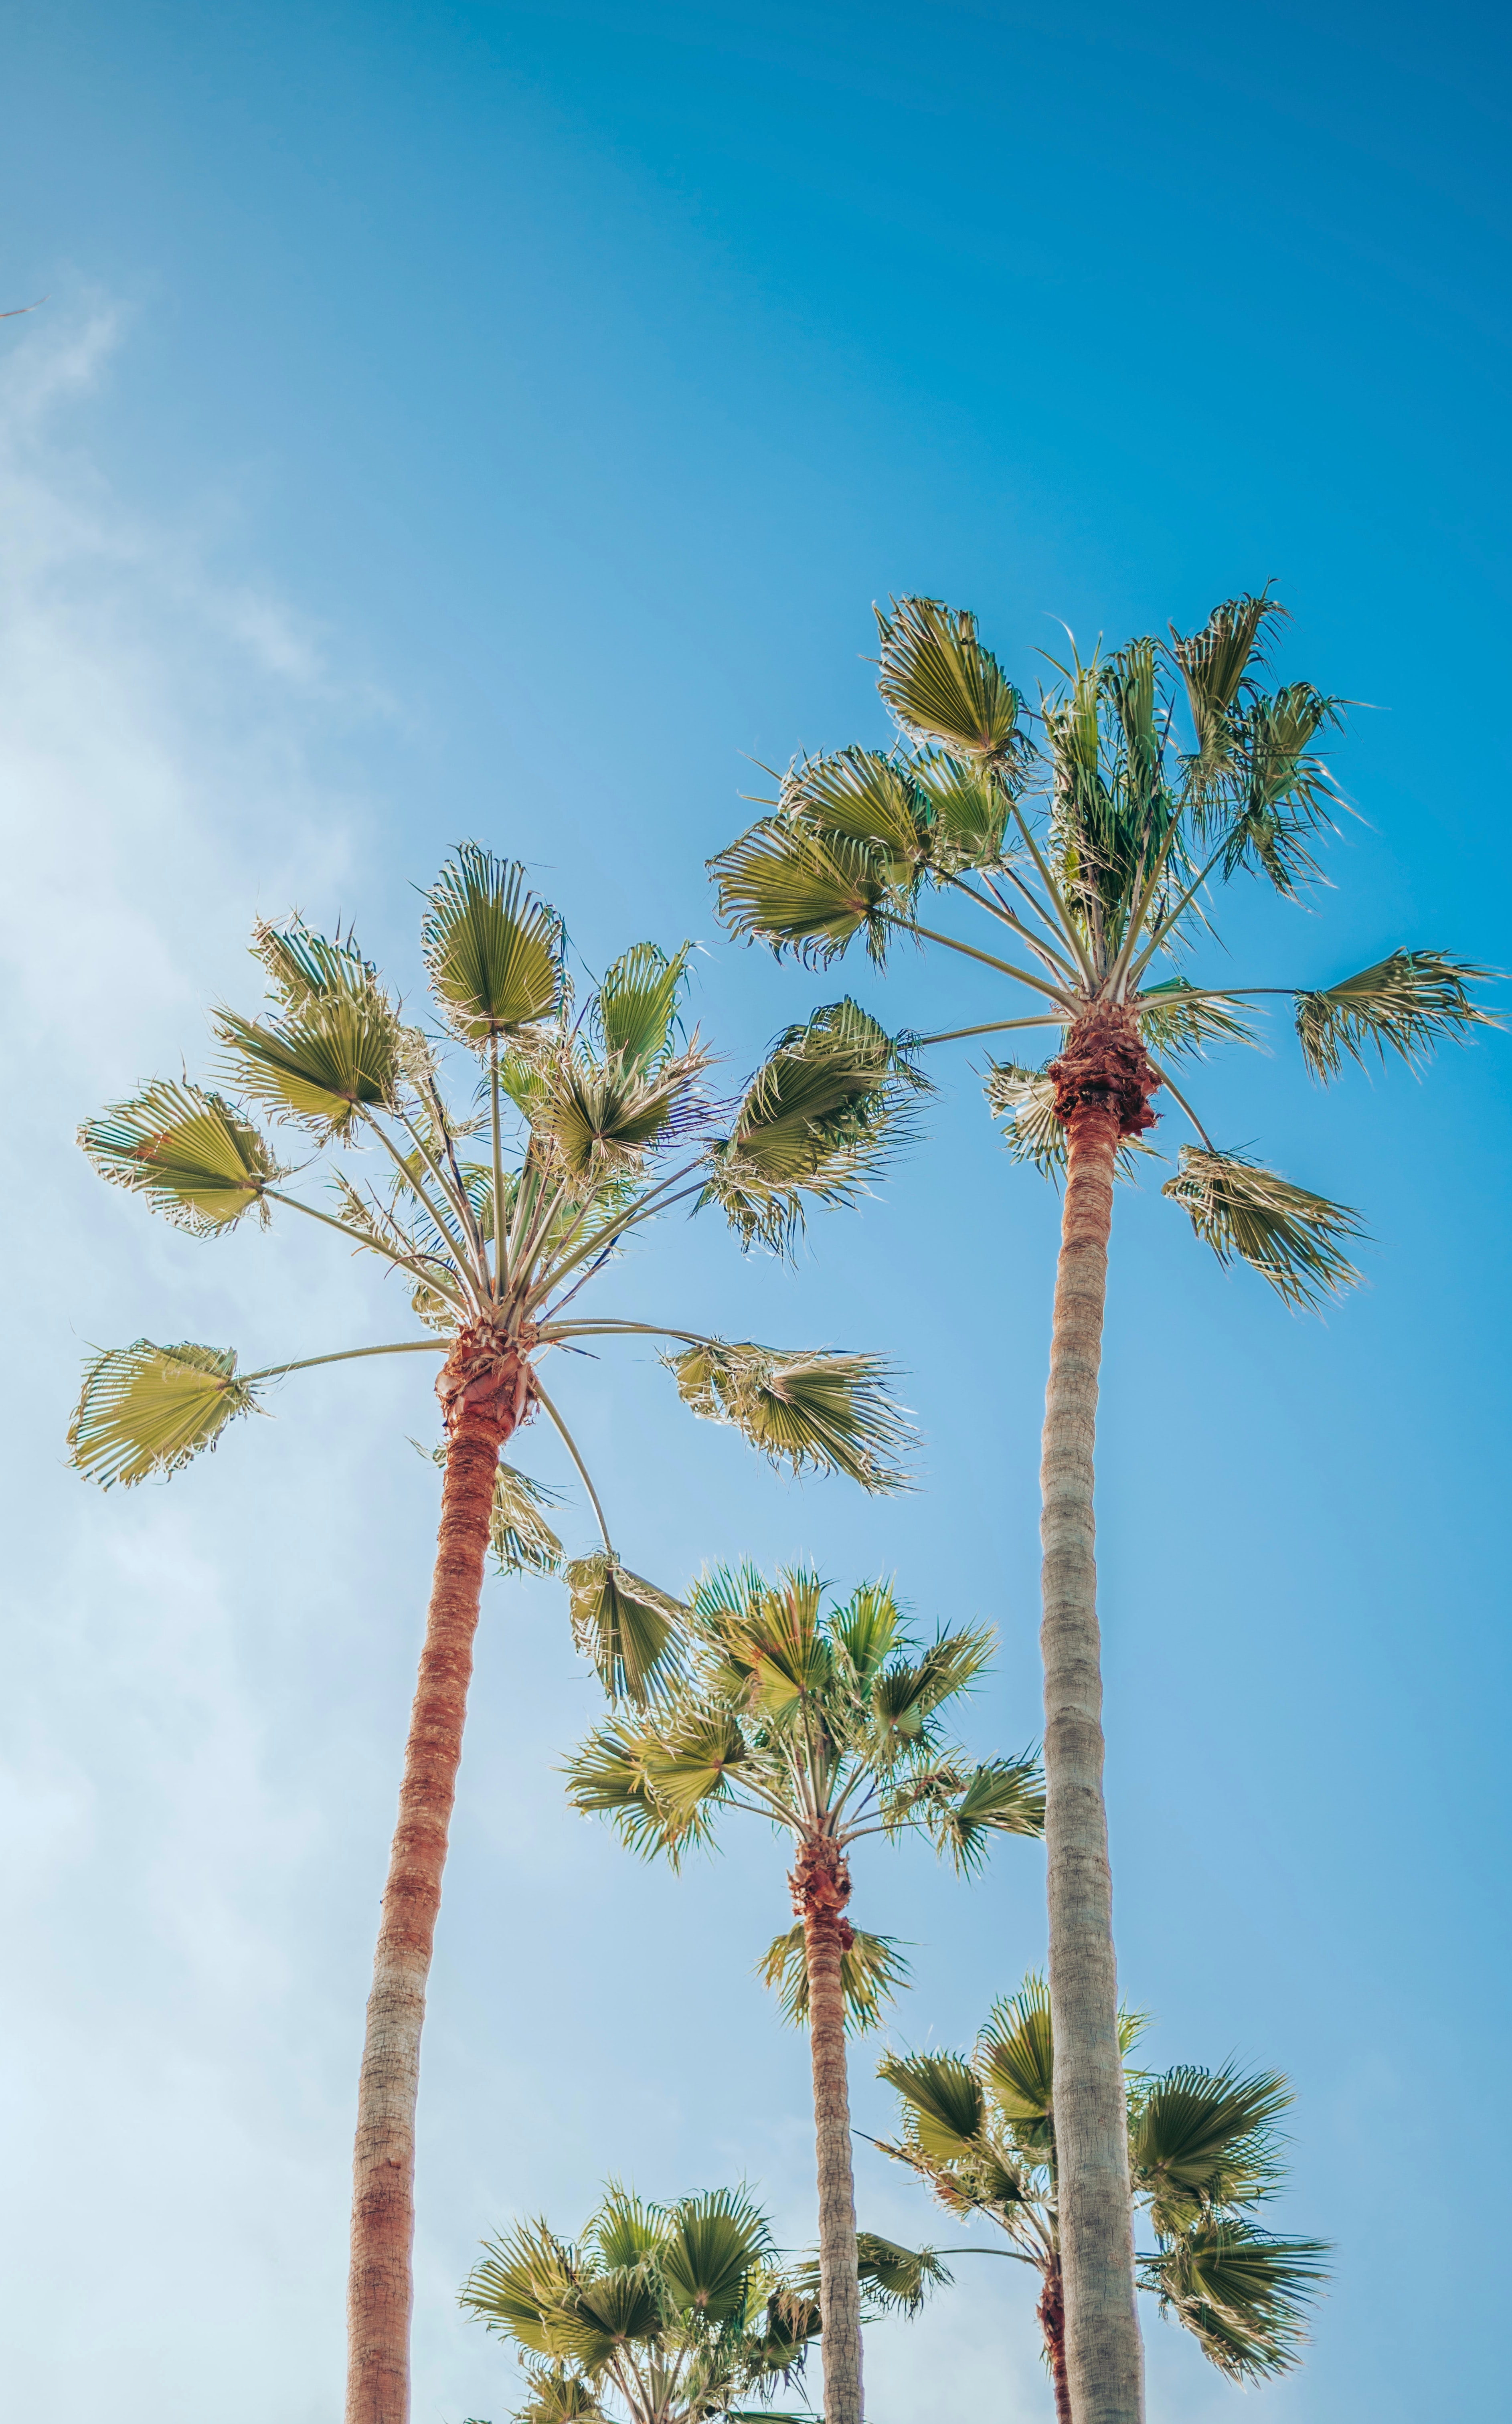 85247 download wallpaper Nature, Sky, Tropics, Summer, Palms screensavers and pictures for free